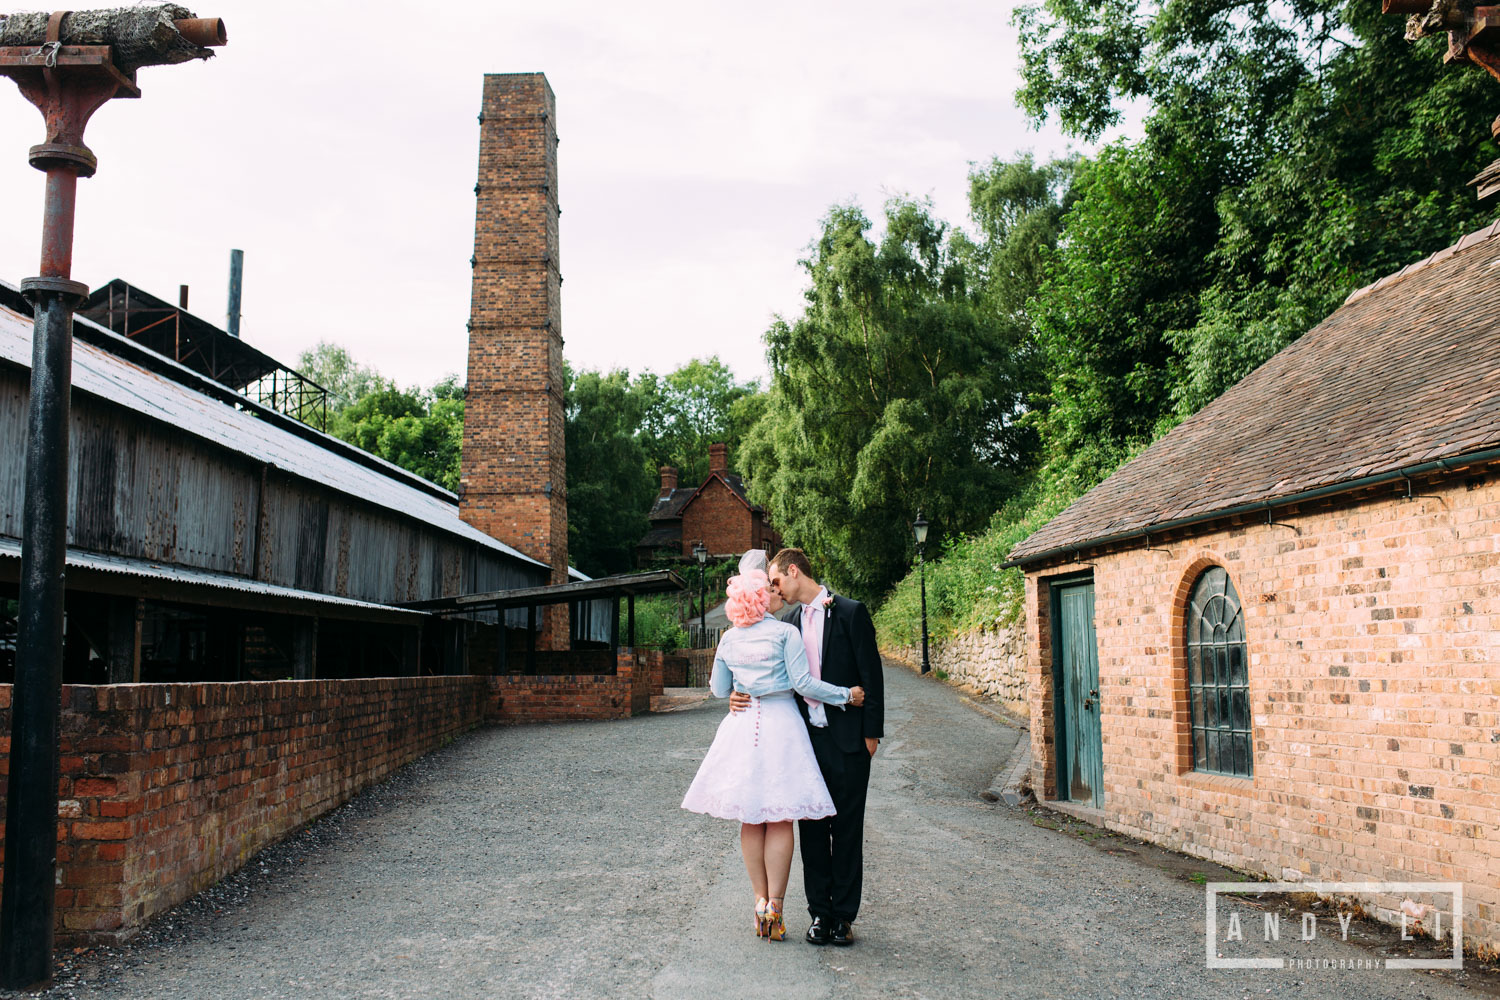 Blists Hill Ironbridge Wedding Photography-Andy Li Photography-466.jpg